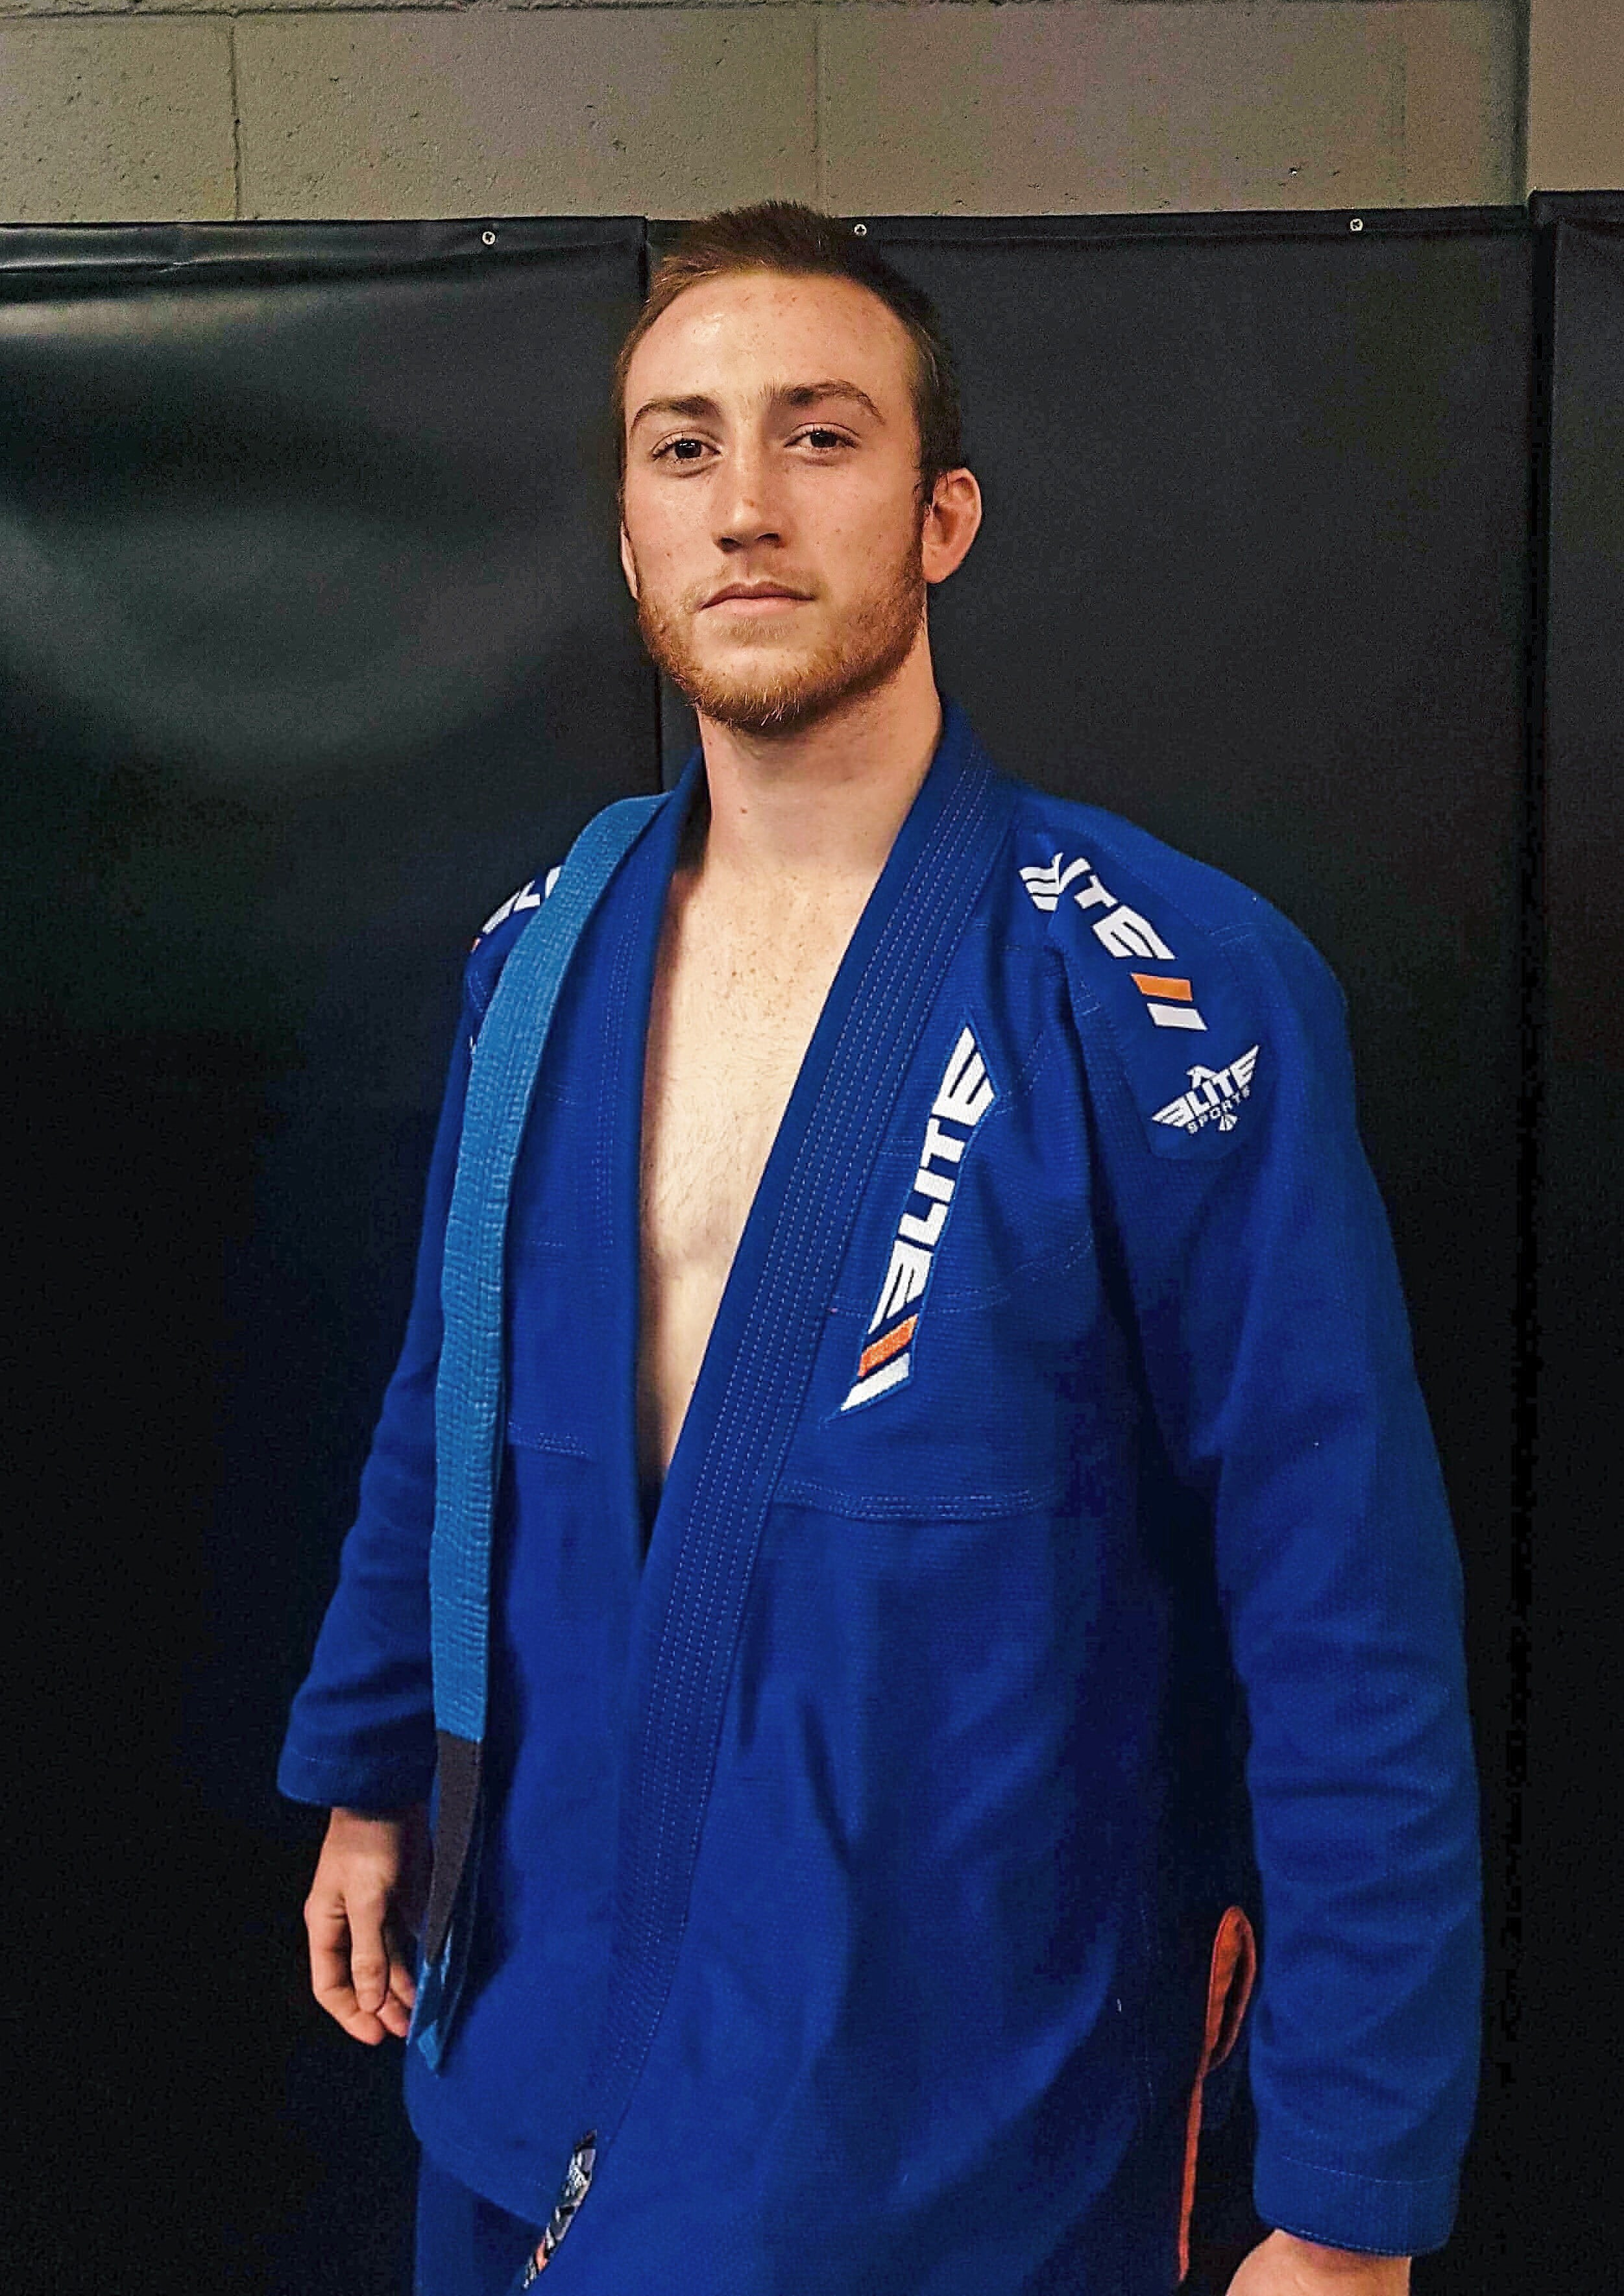 Elite Sports Team Elite Bjj Fighter Ashton Riddle-Johnston  Image4